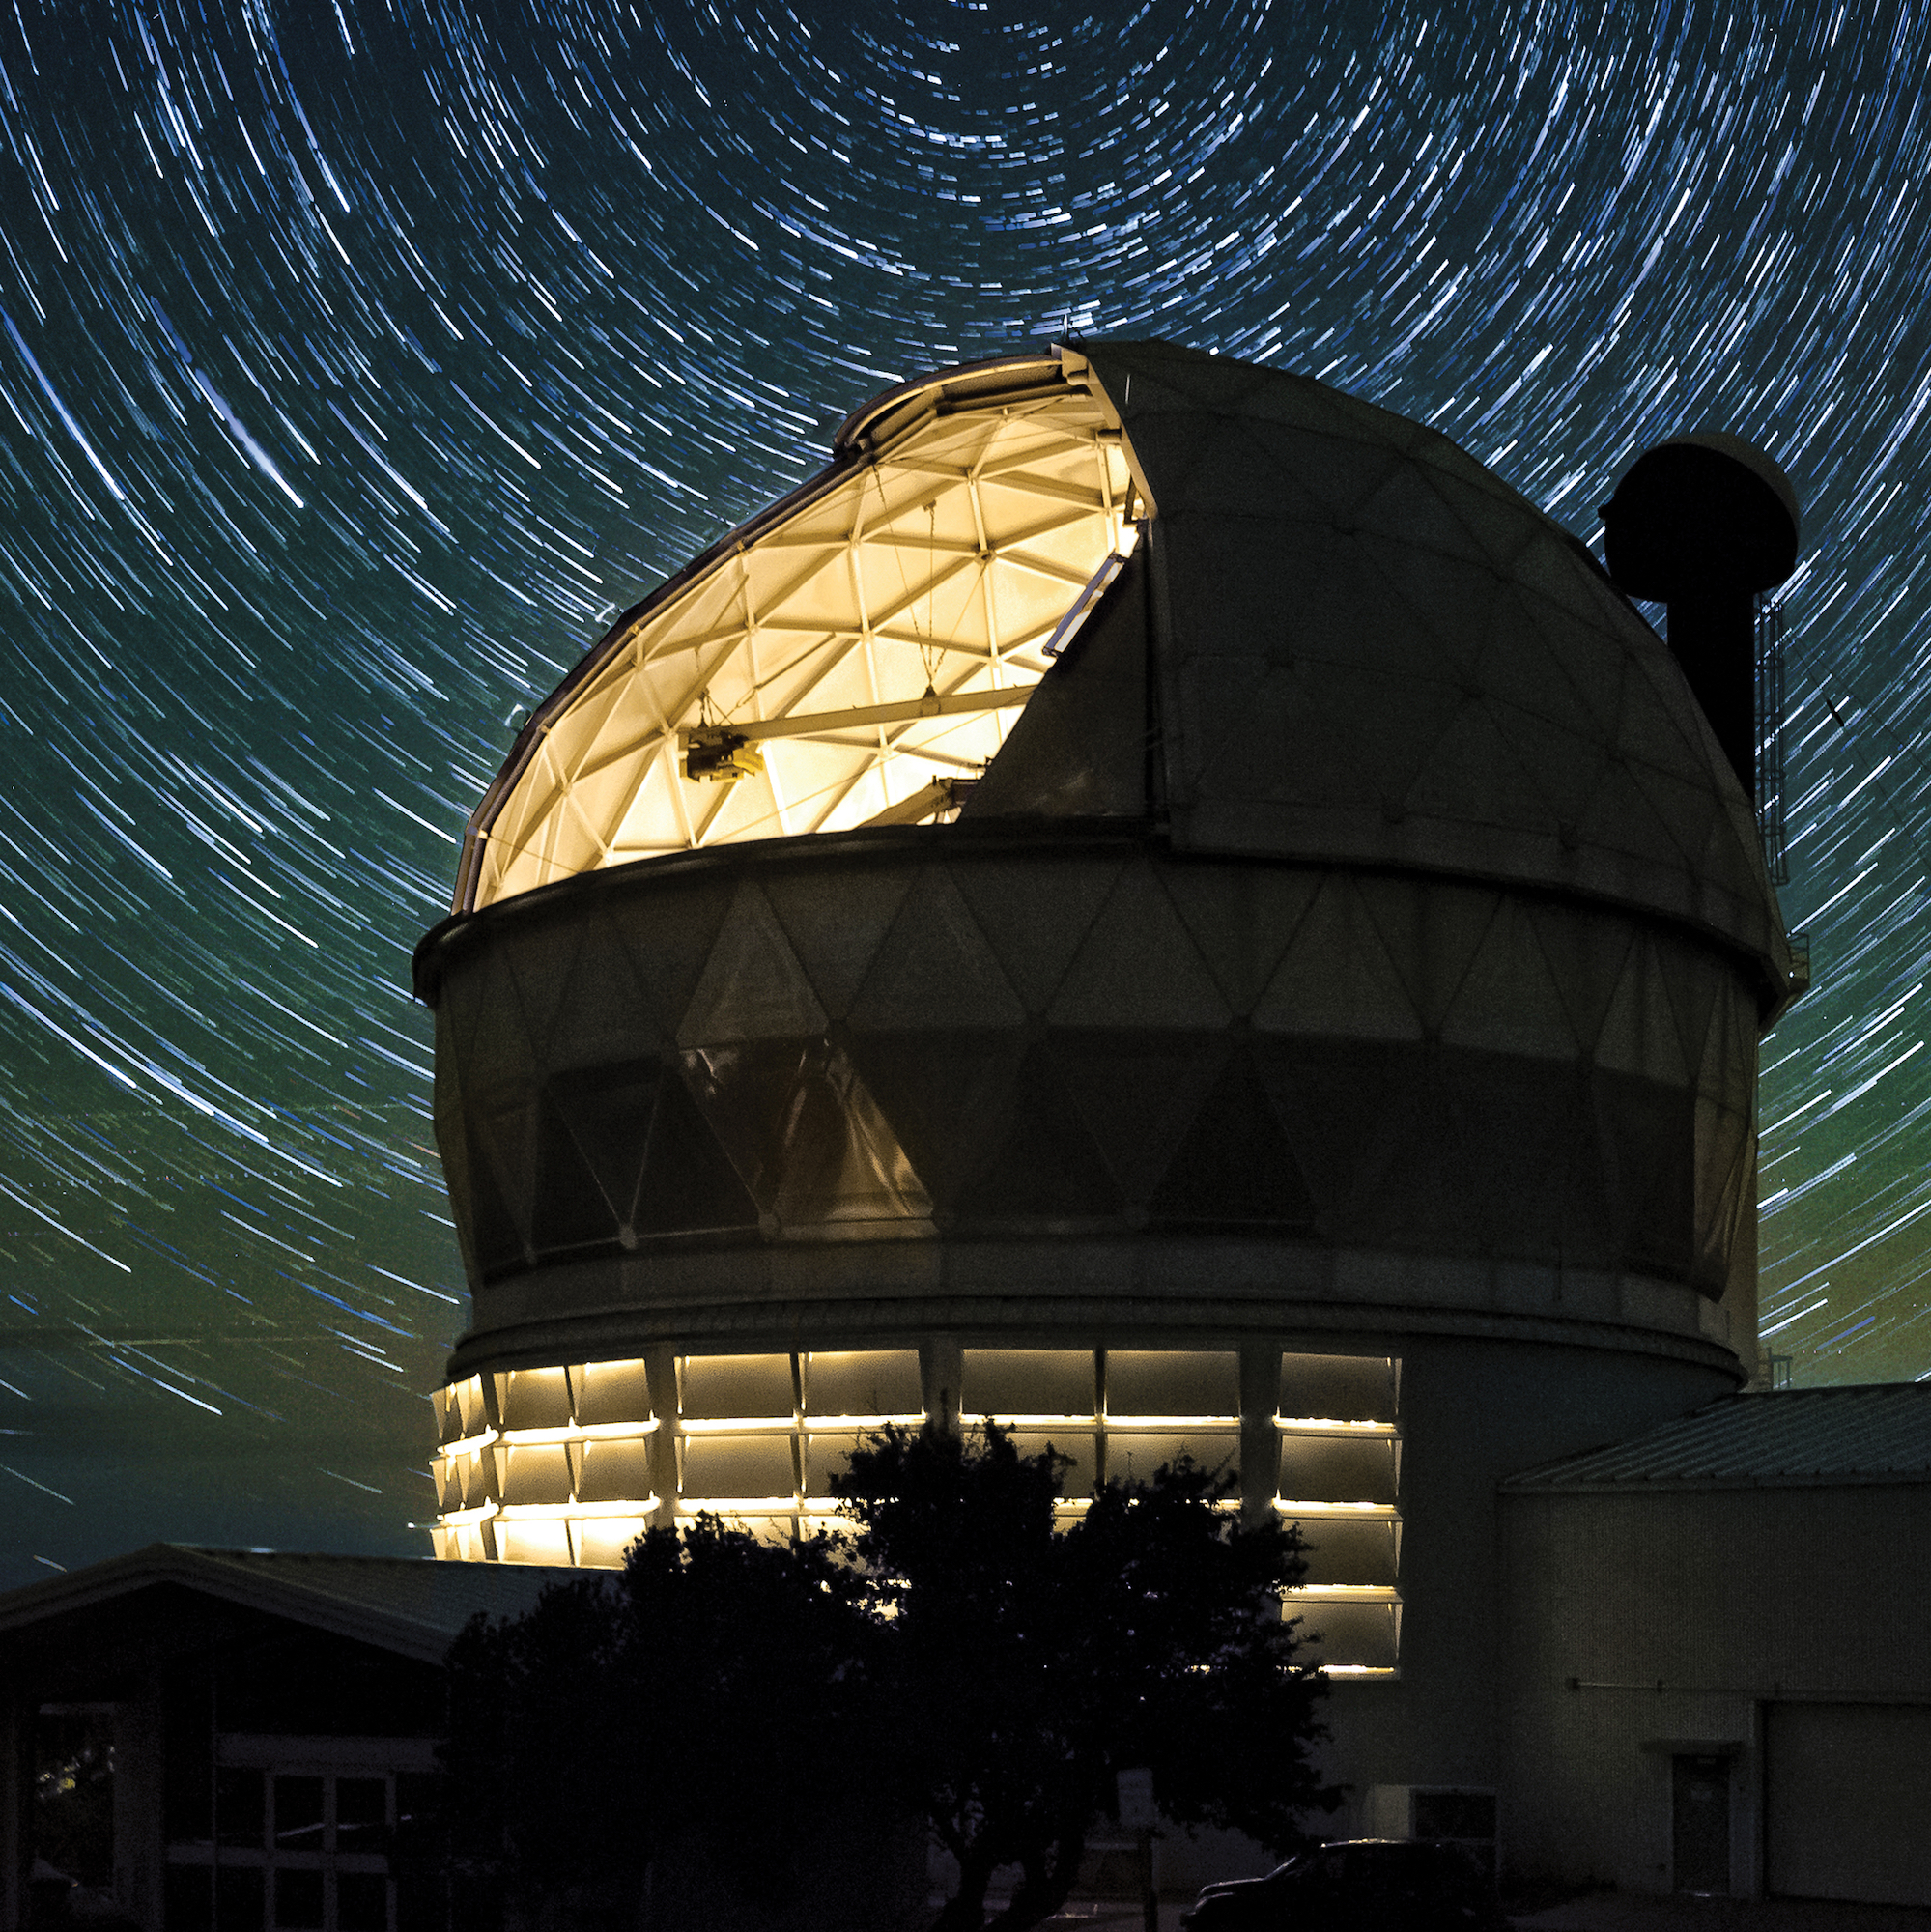 In the stars, McDonald observatory